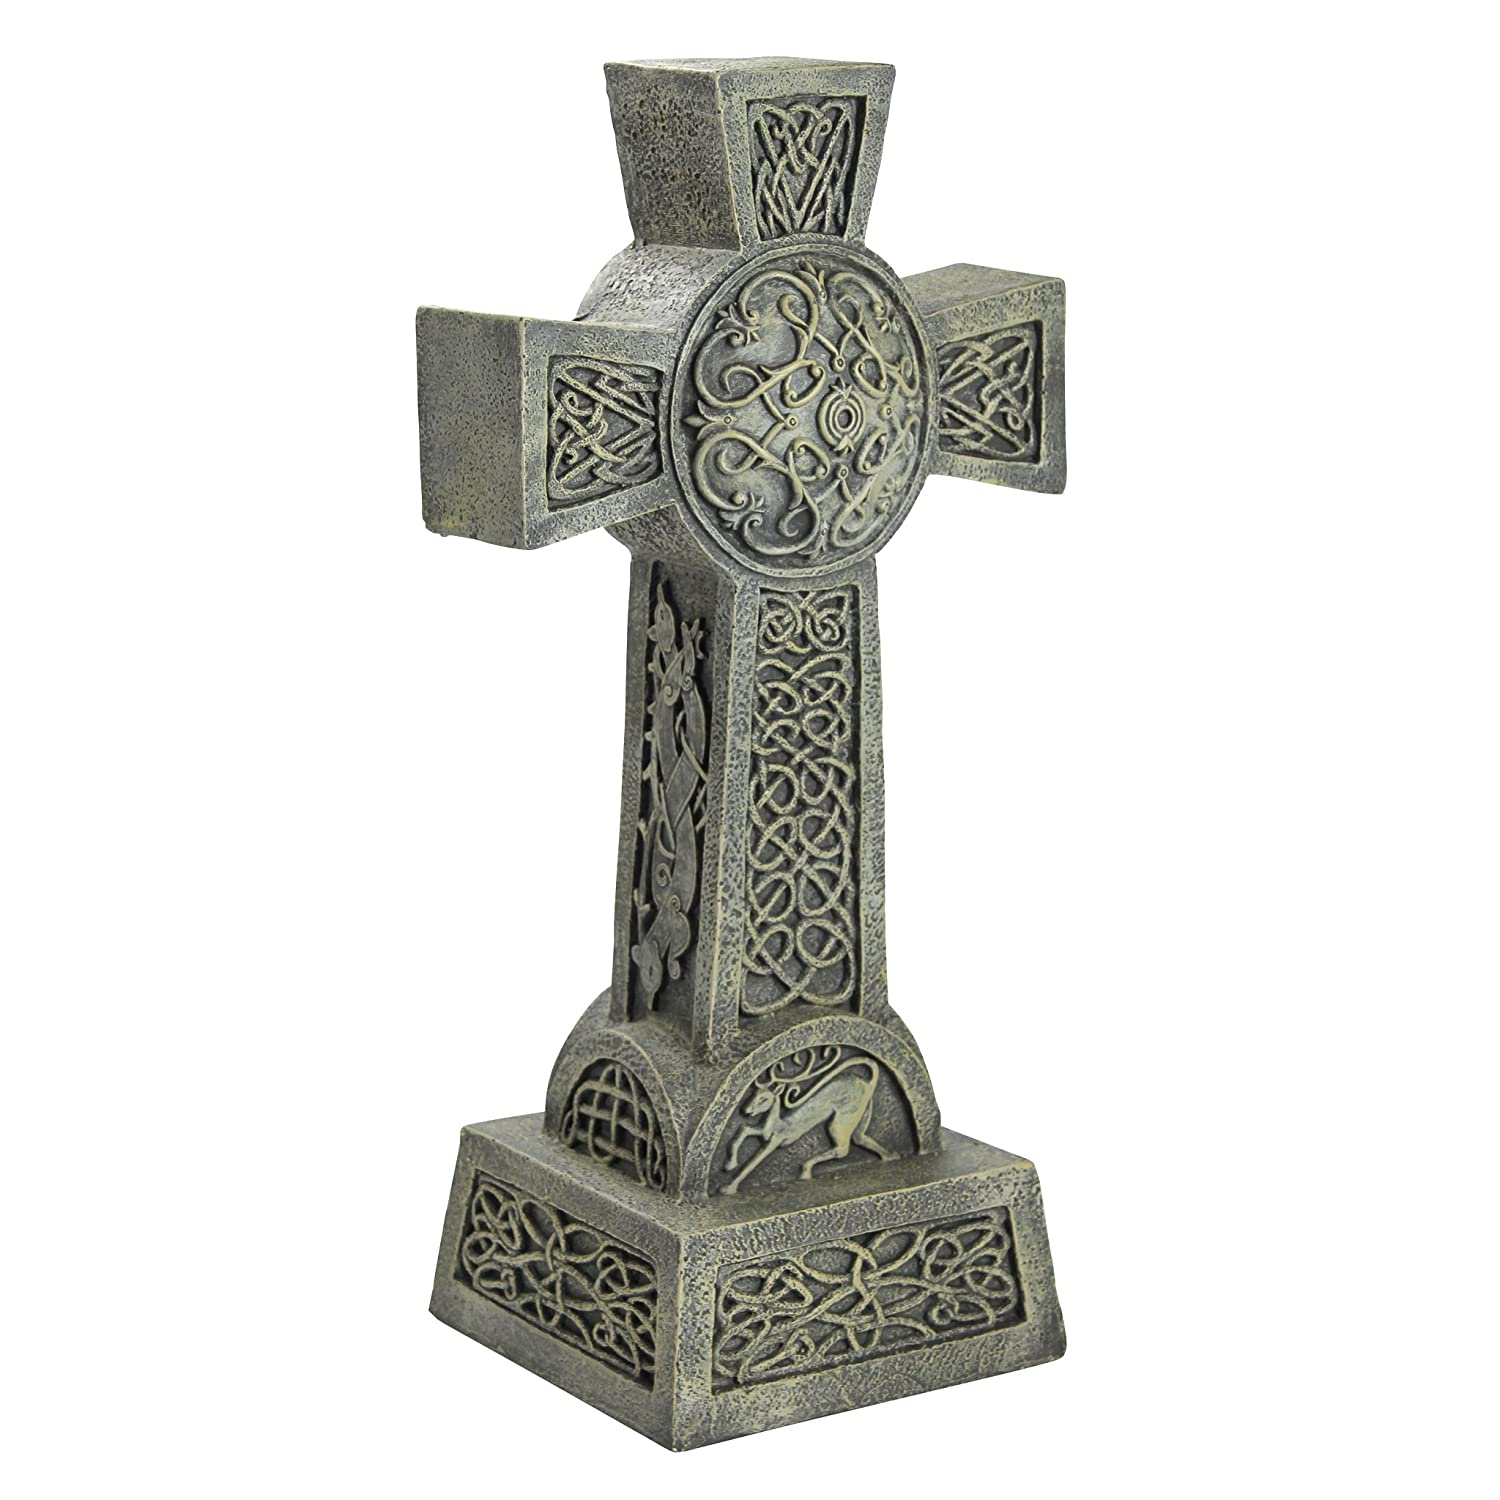 Design Toscano Donegal Celtic High Cross Statue - Irish Cross Statue - Memorial Statue Interpet Ltd DB25692